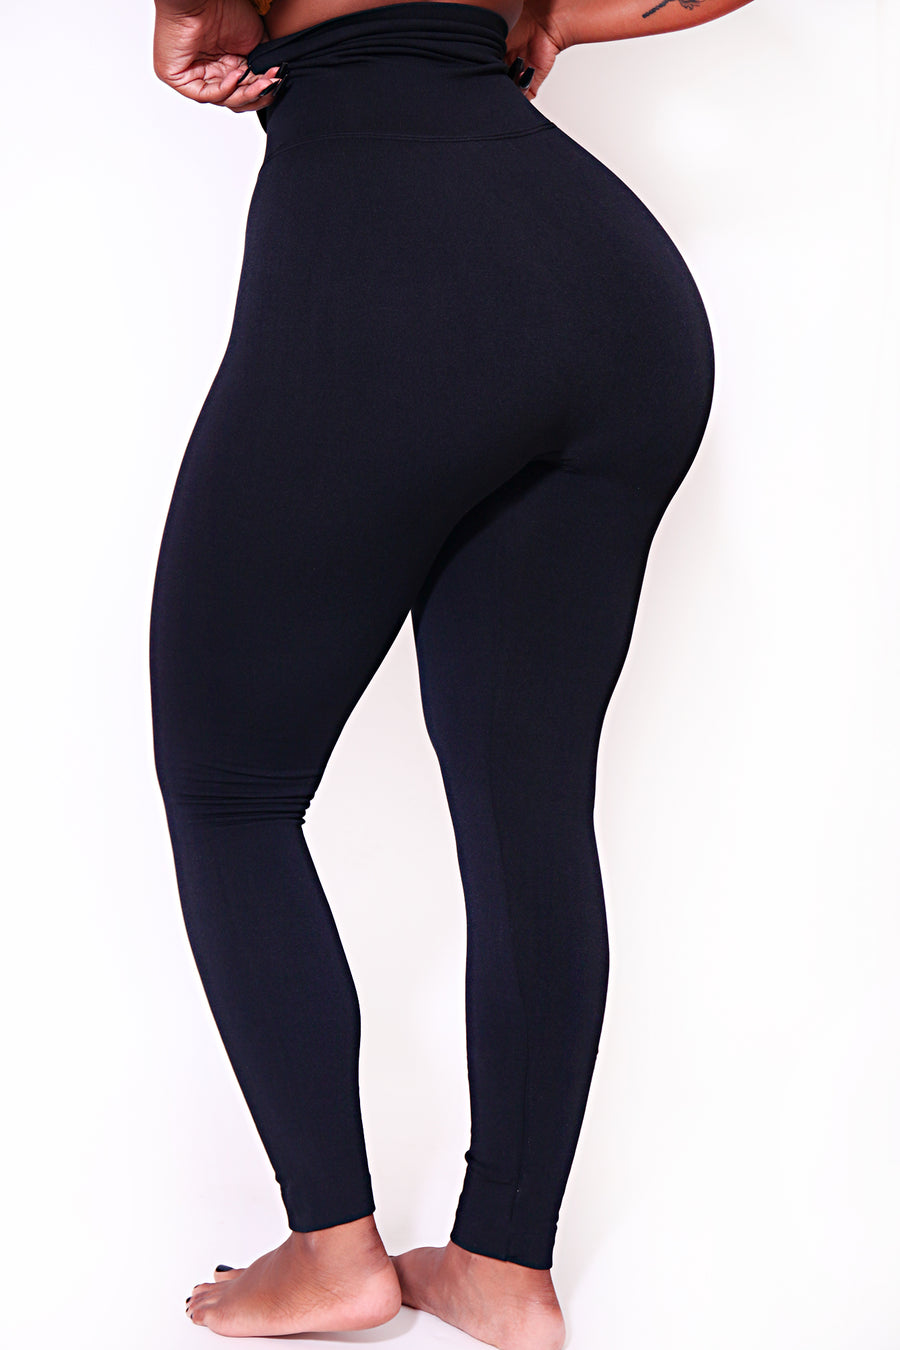 YOGA TUMMY CONTROL LEGGING FITS UP TO PLUS! CHOOSE YOUR SIZE *2 COLORS*